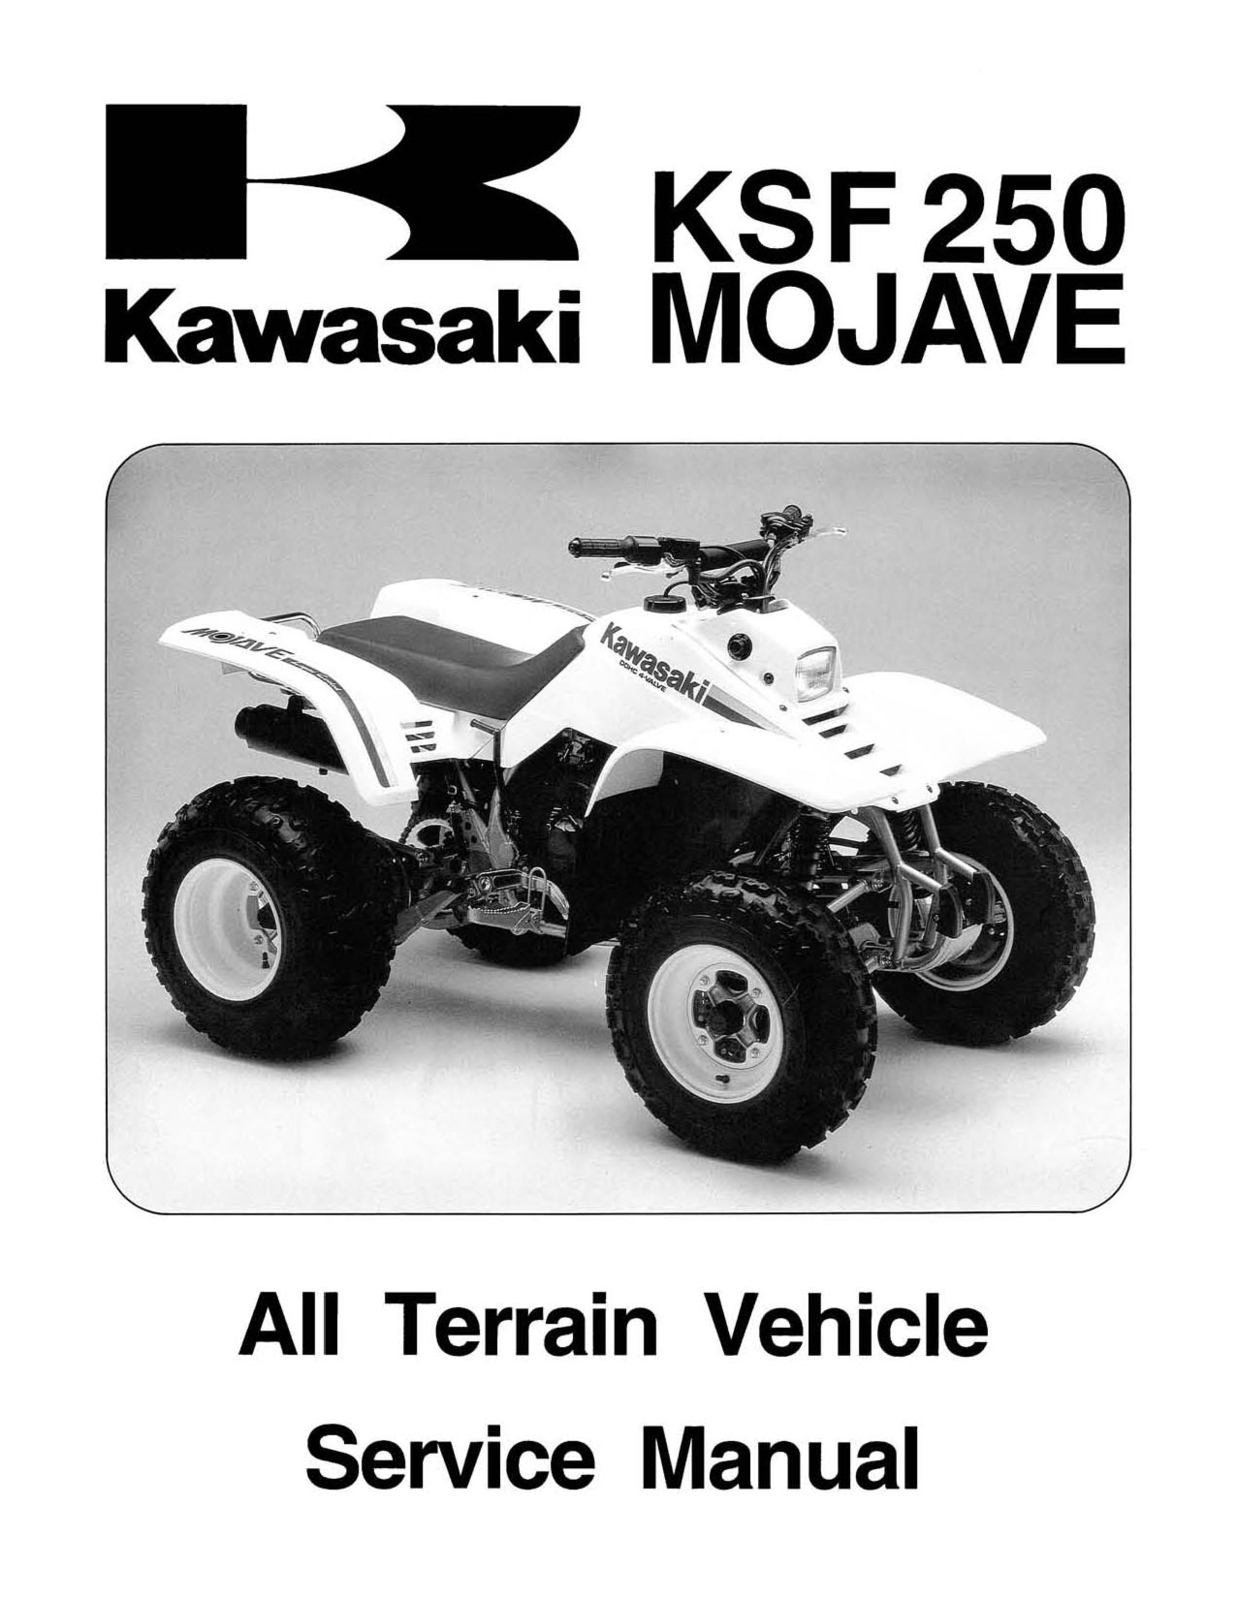 Kawasaki Mojave Atv Wiring Harness Diagrams Boat Throttle Diagram Ksf Mercury Outboard 115 Hp Start Button Trailer